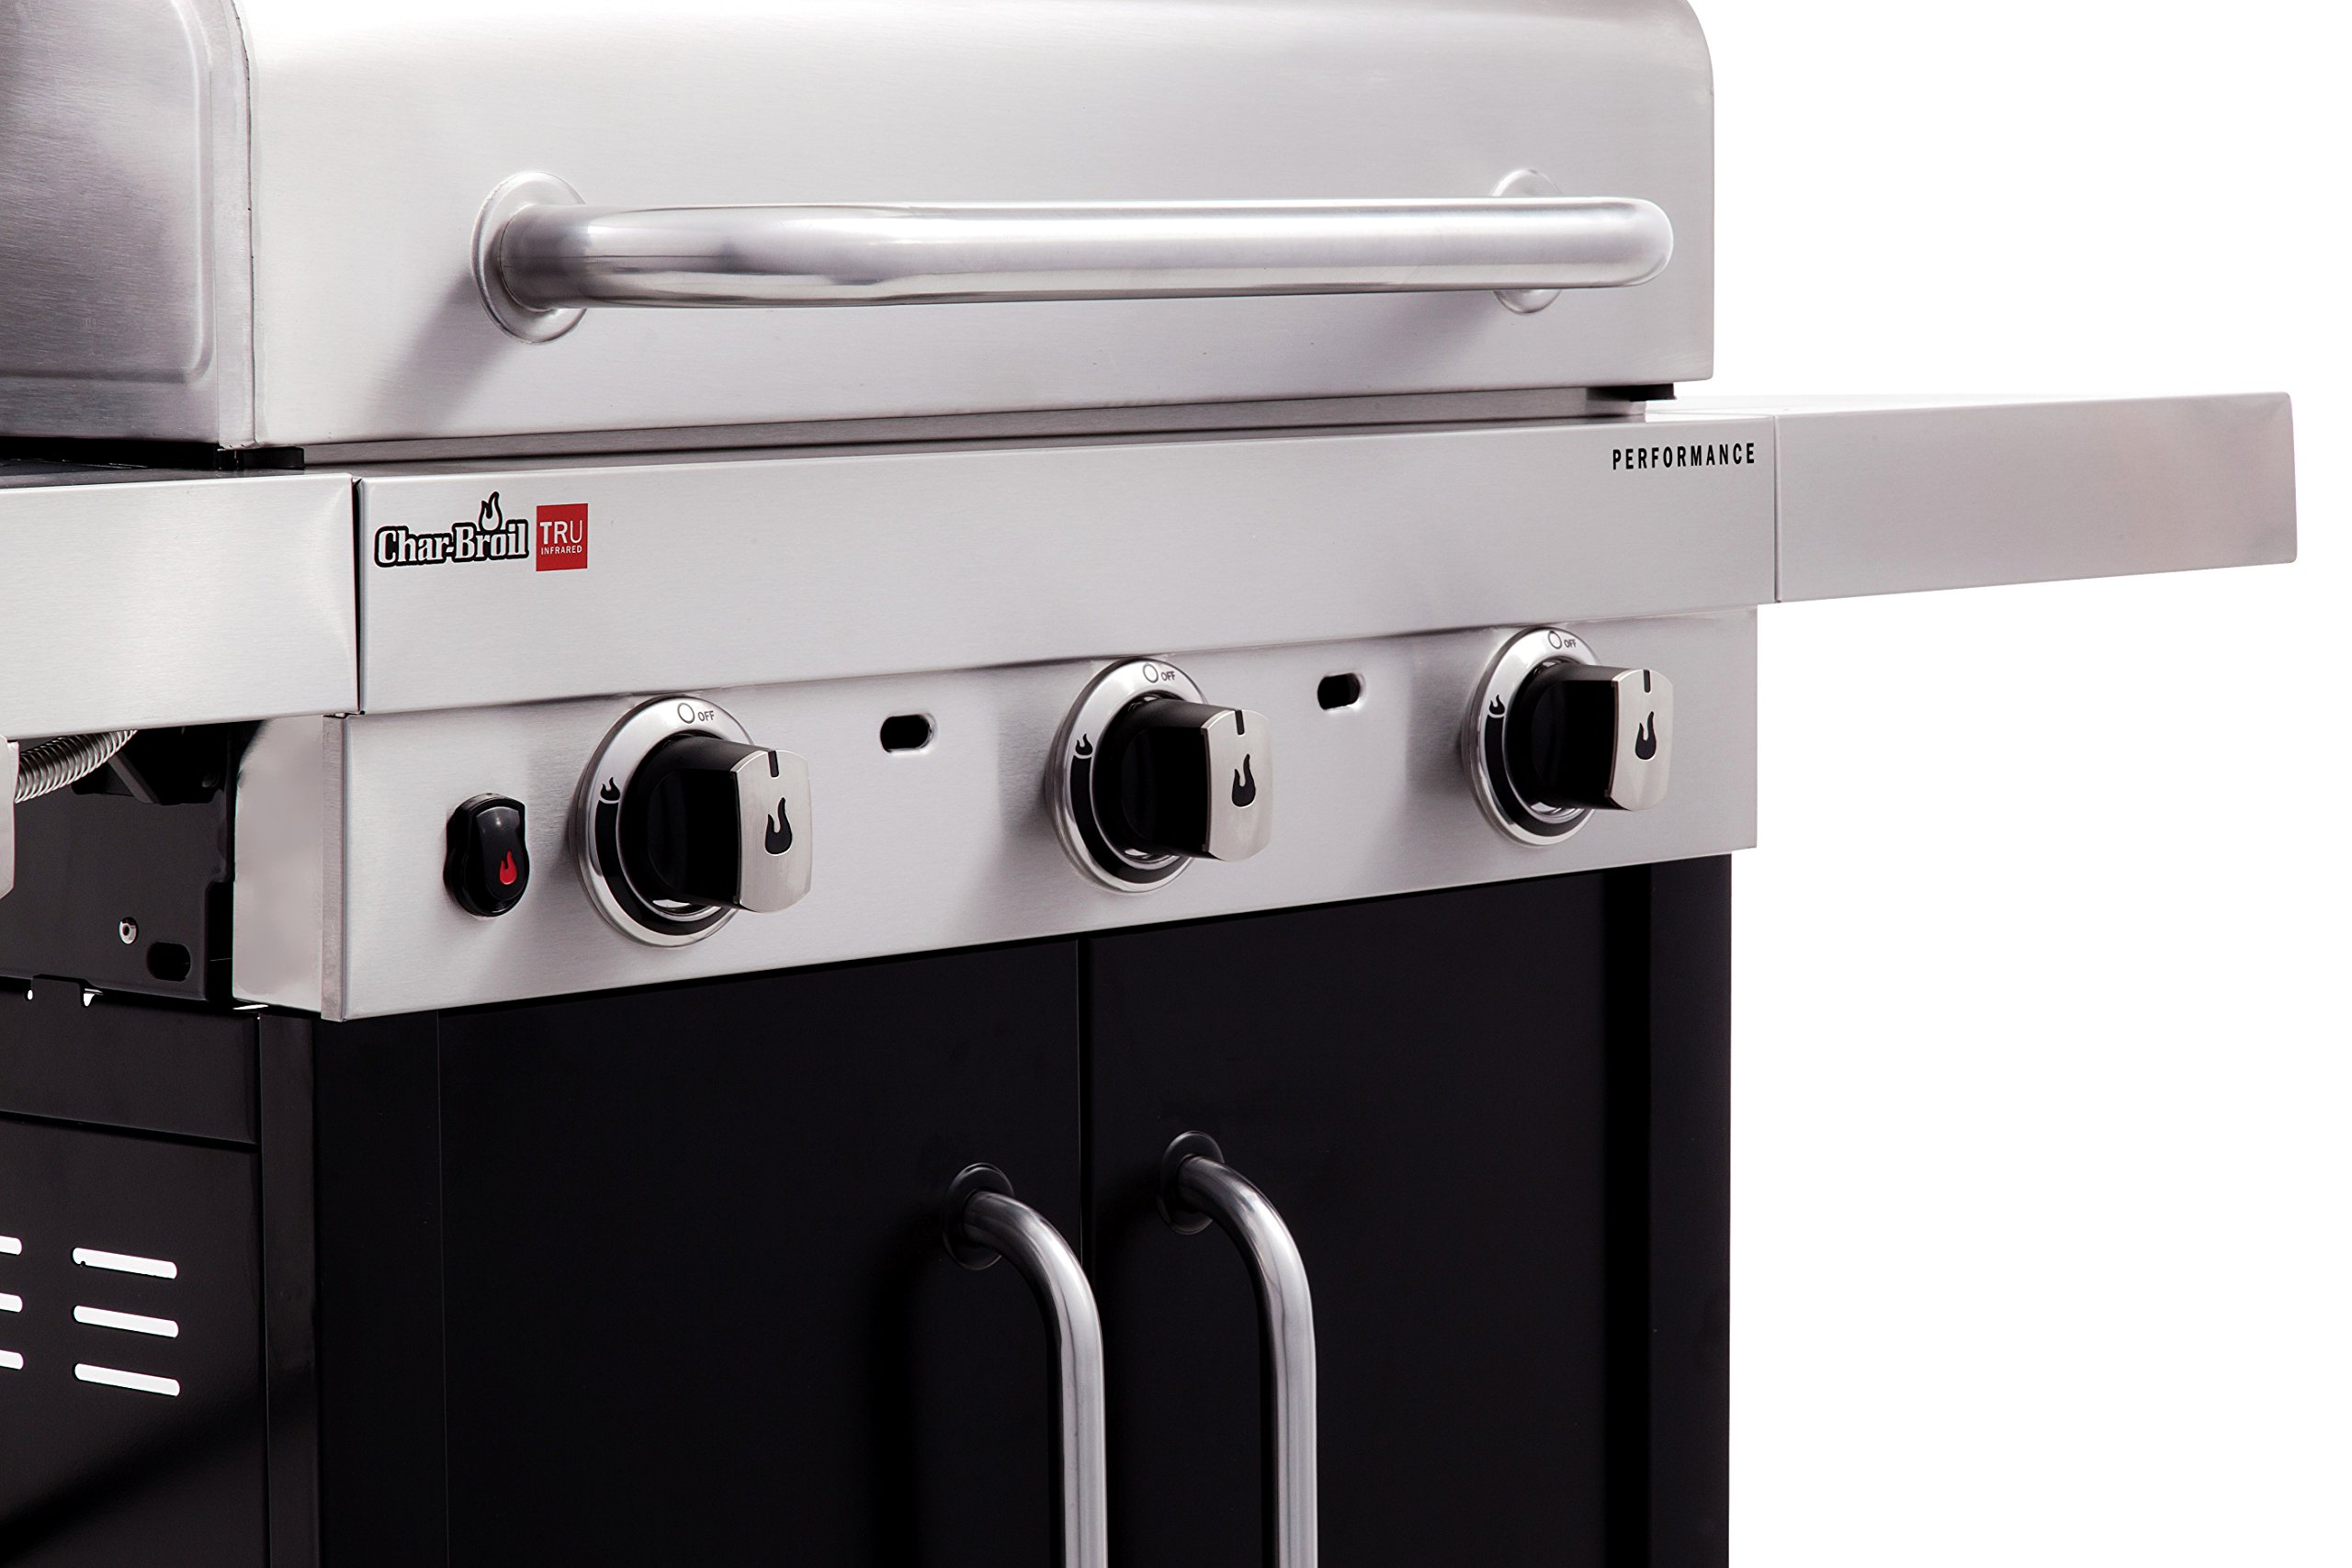 Char-Broil Performance TRU-Infrared 450 3-Burner Cabinet Liquid Propane Gas Grill by Char-Broil (Image #7)